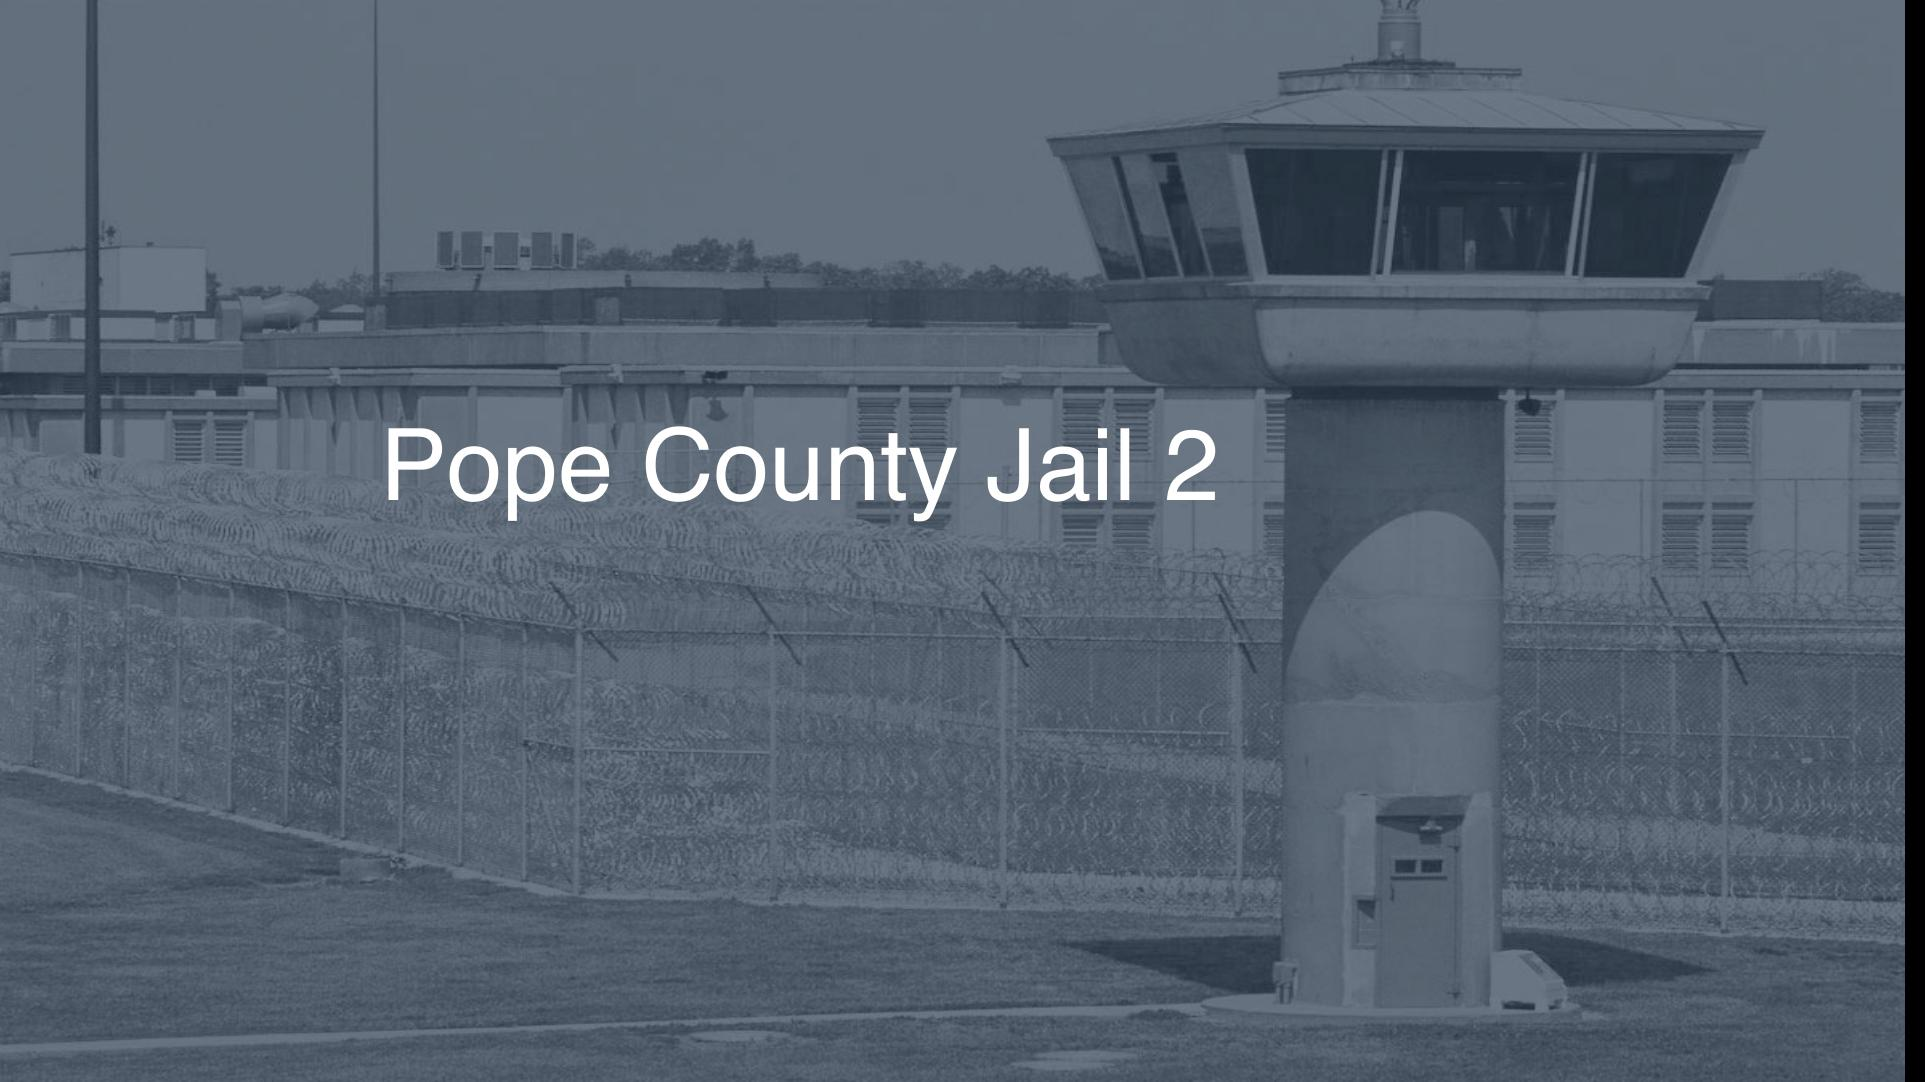 Pope County Jail Inmate Search, Lookup & Services - Pigeonly